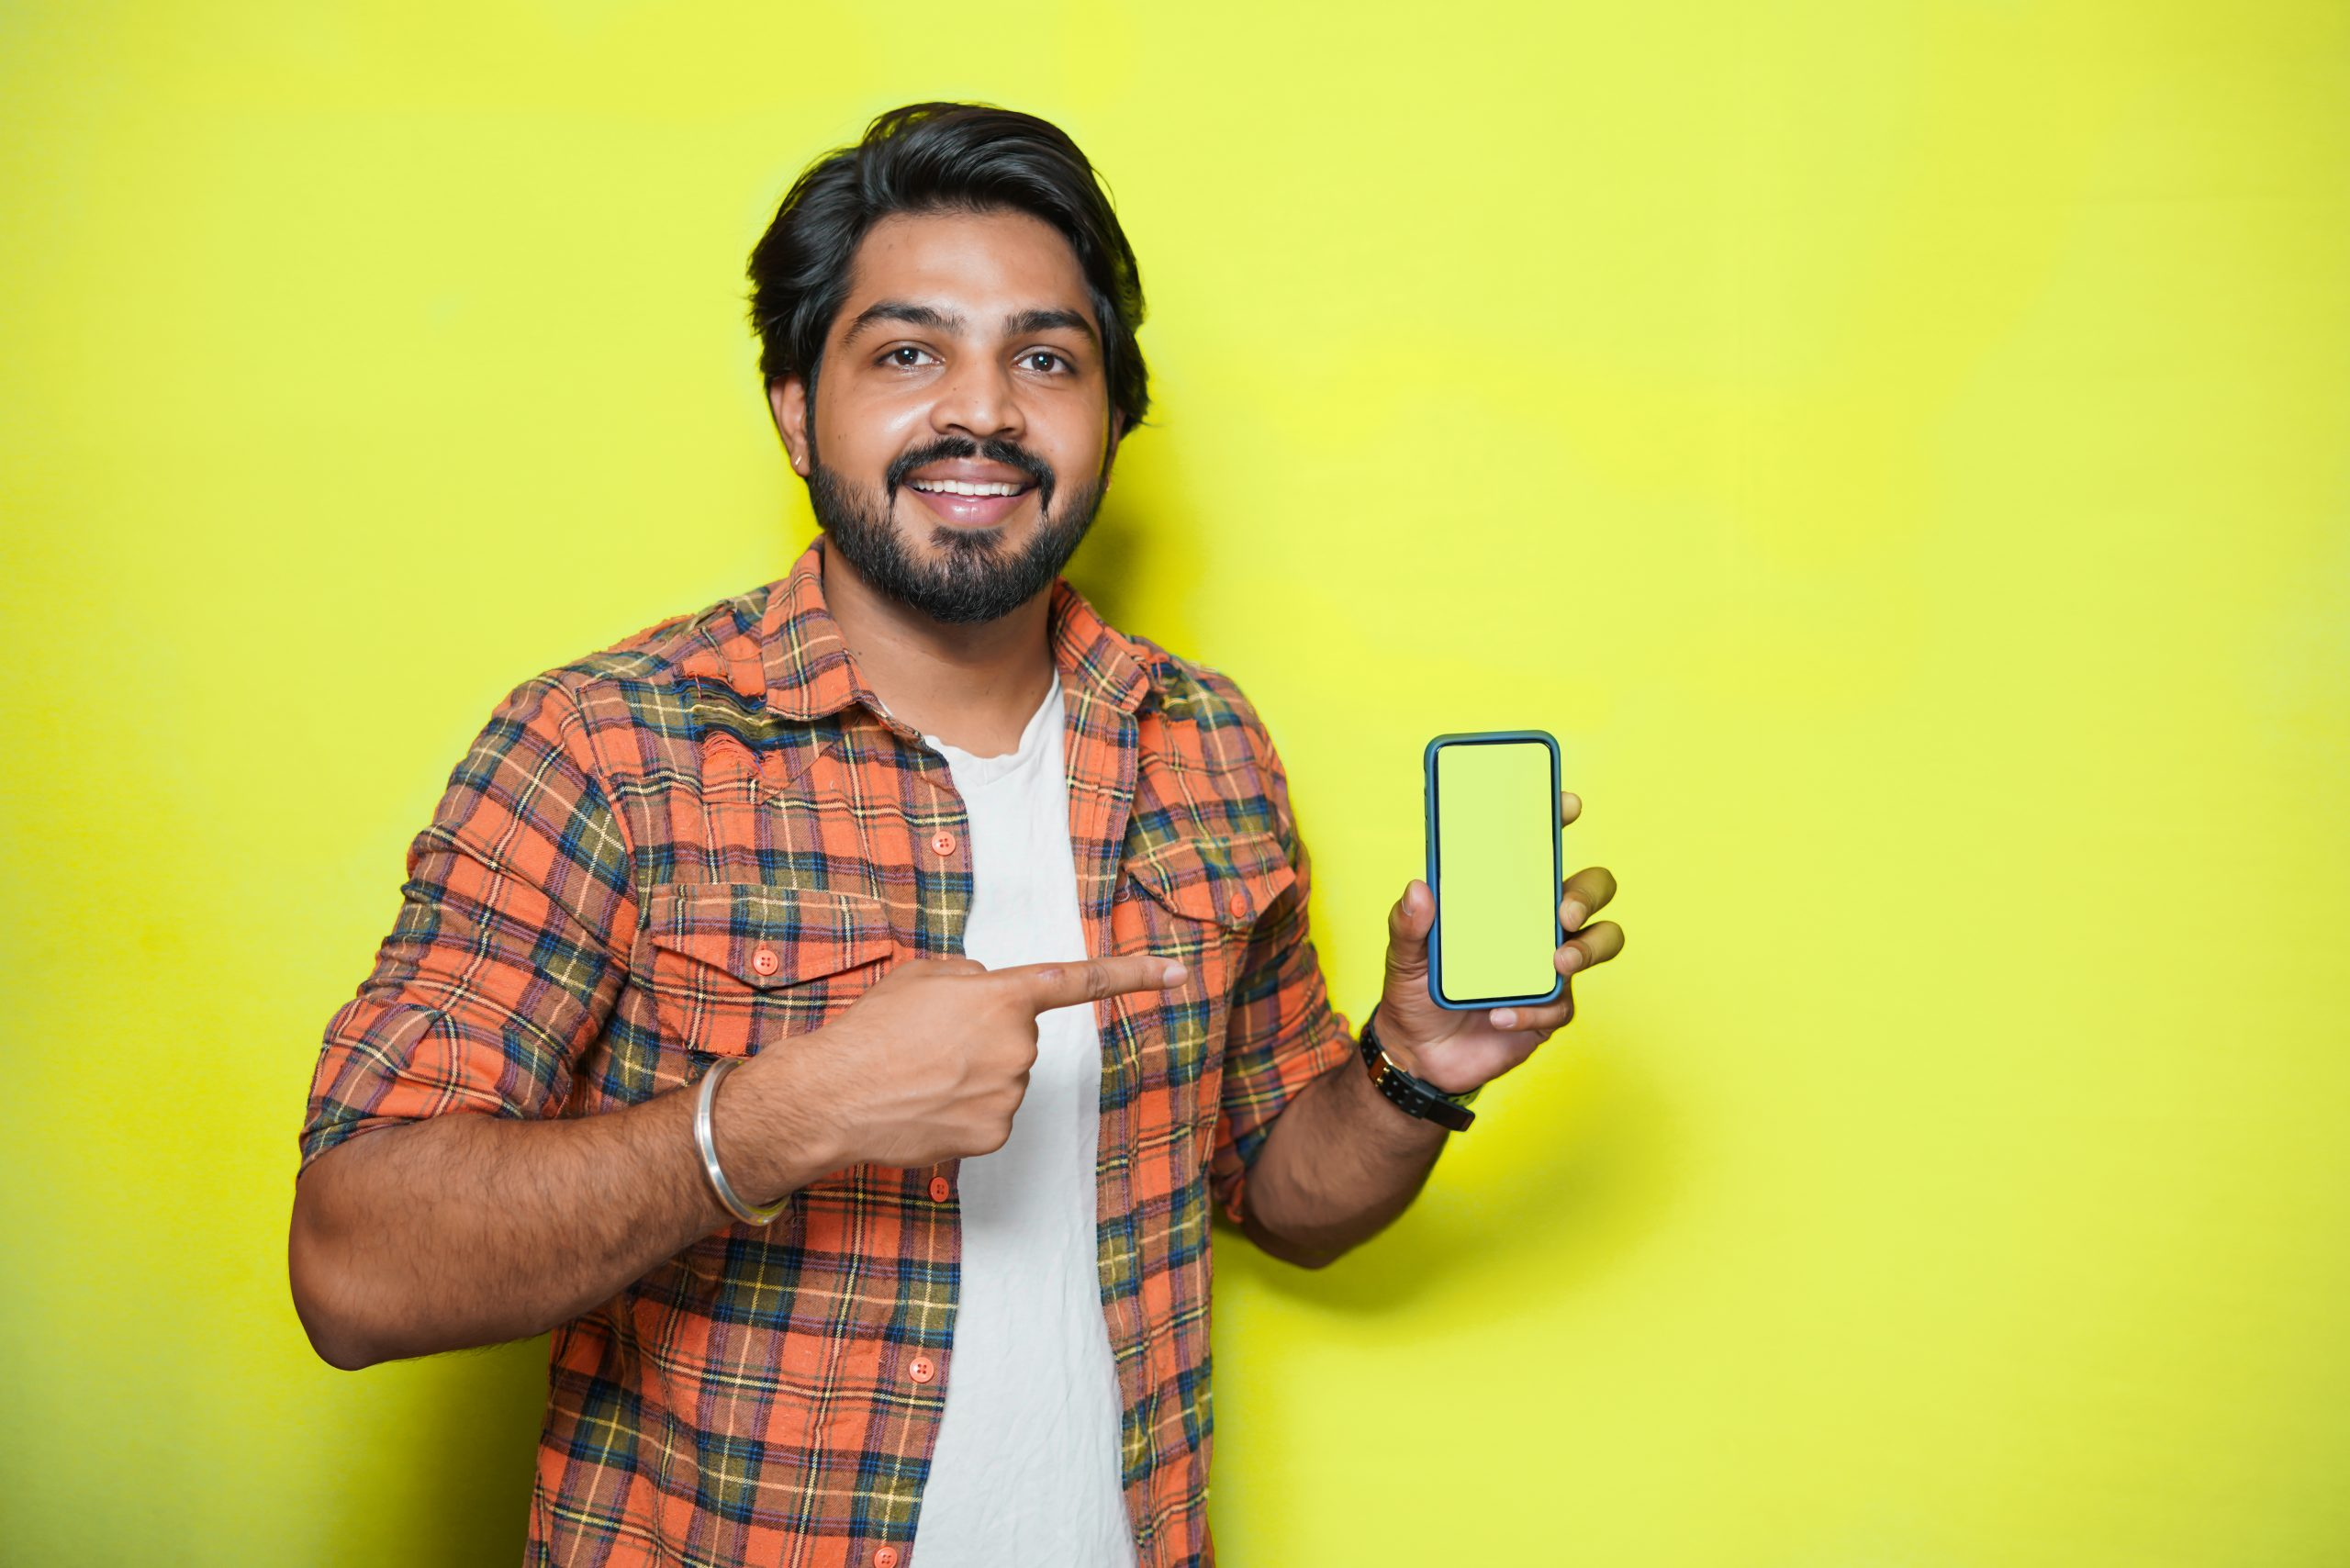 Male Model Holding a Phone on Yellow Background